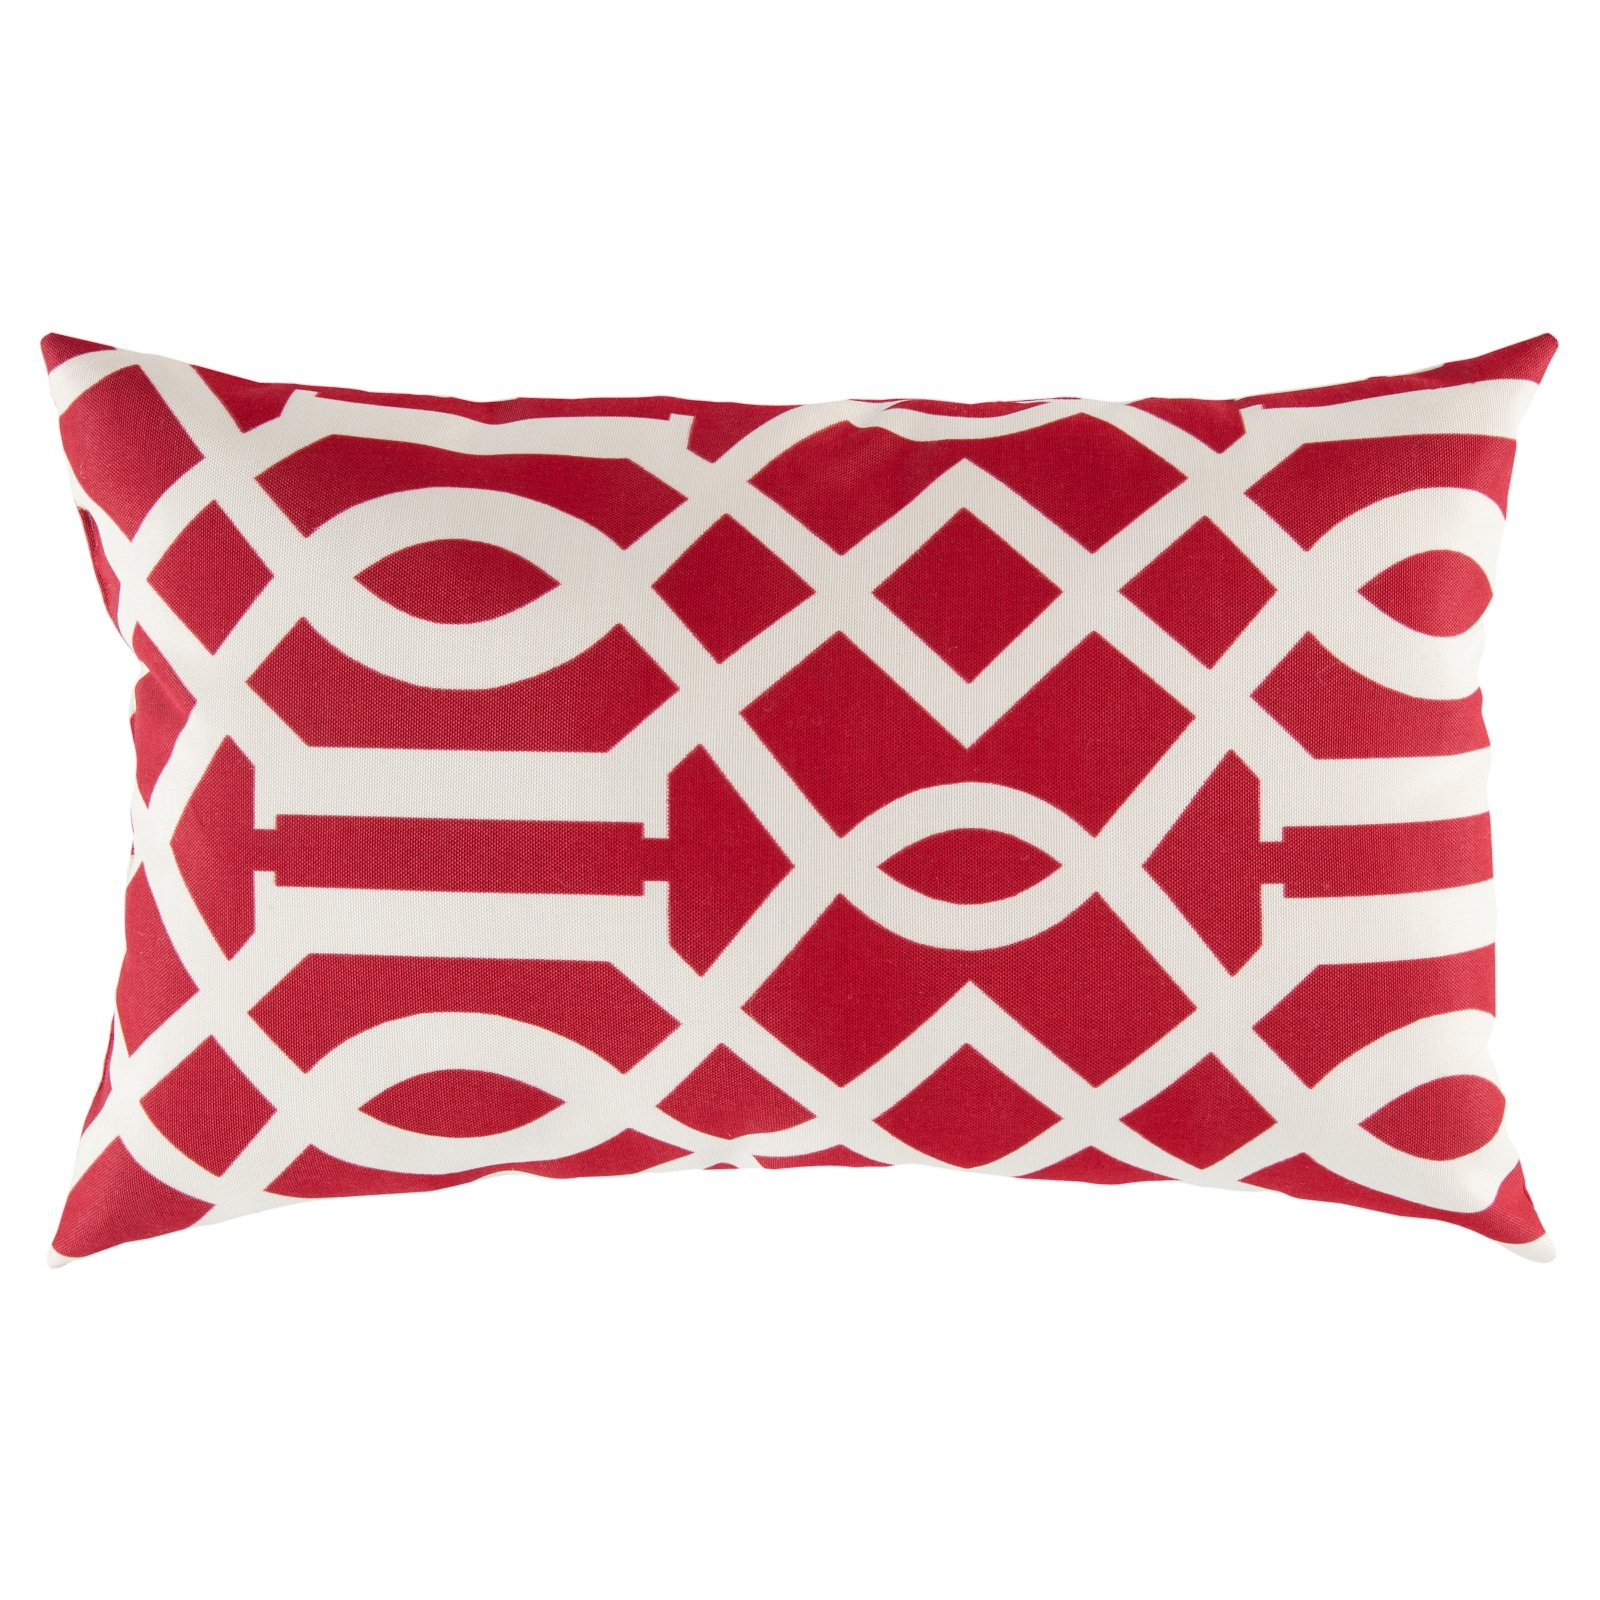 Surya 13 x 20 in. Polyester Decorative Pillow by Surya